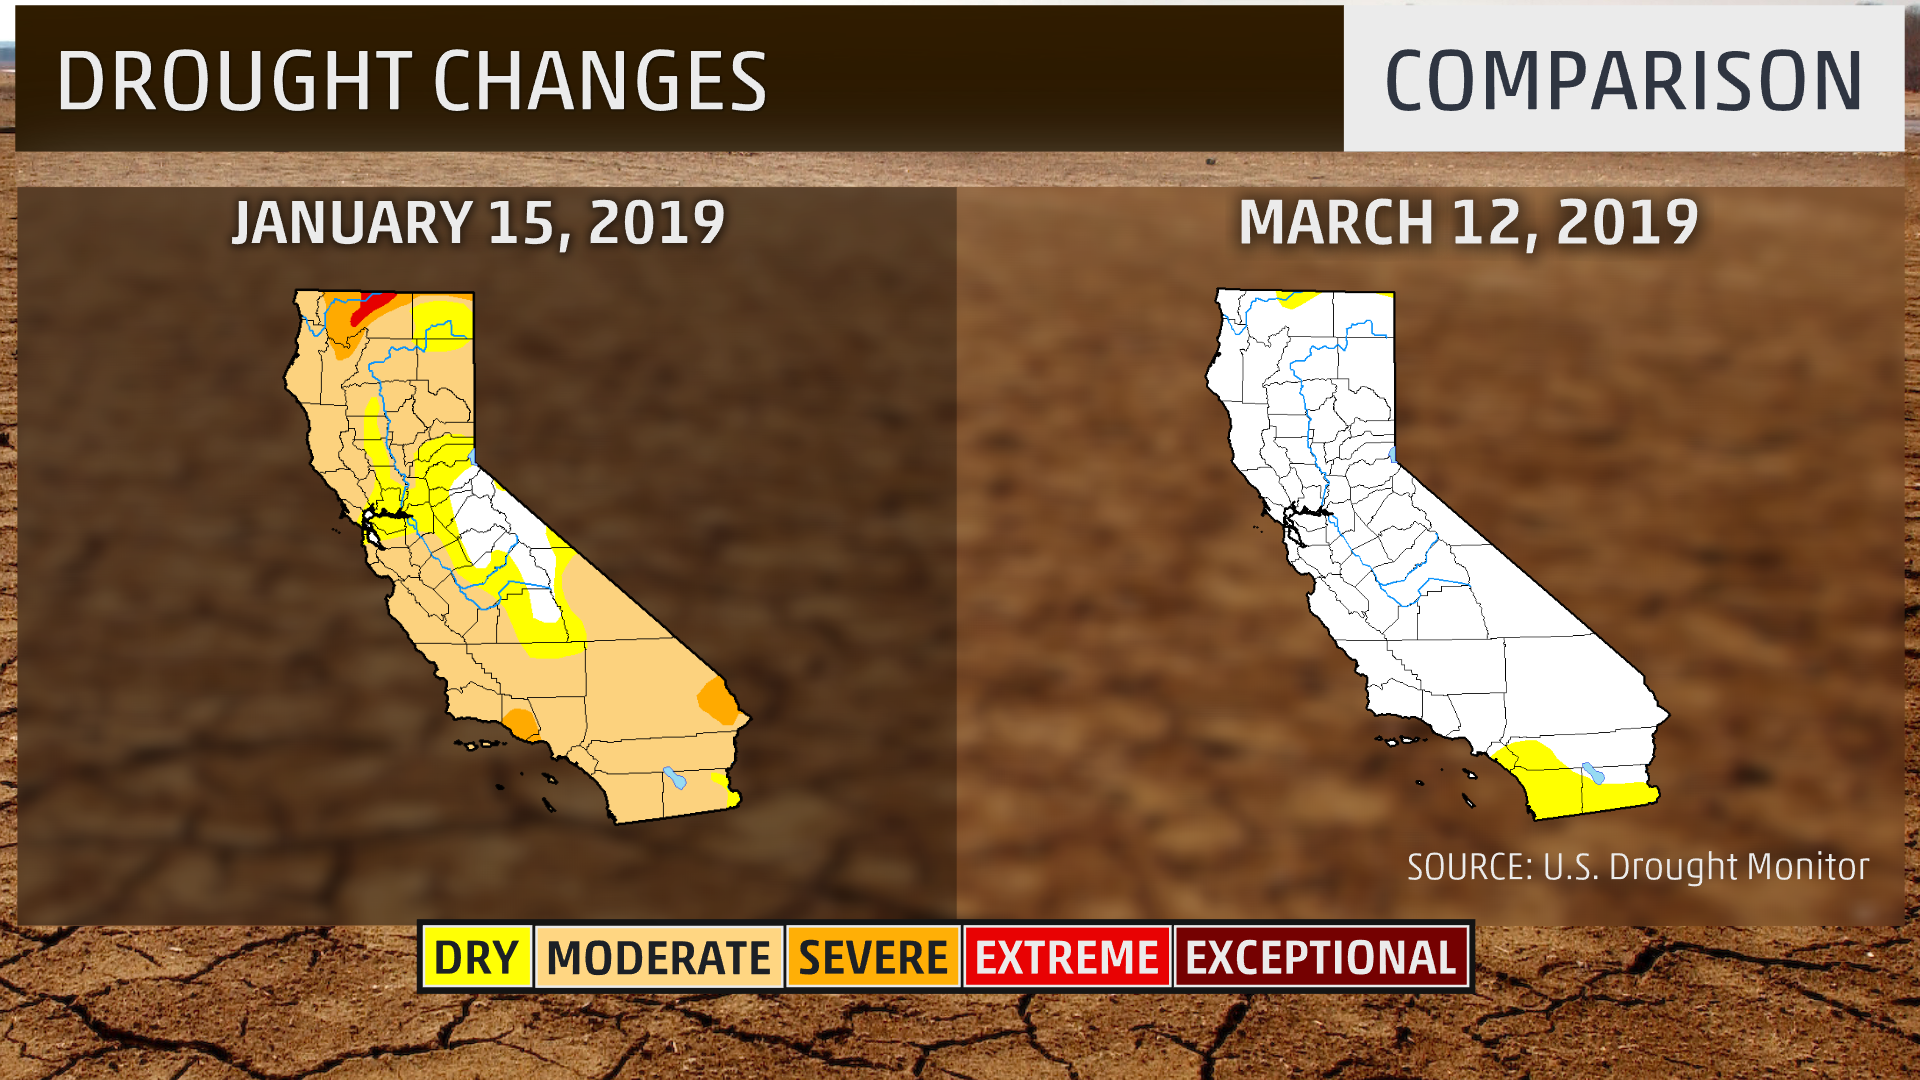 California Is Drought-Free for First Time in over 7 Years ... on california groundwater, california mountain ranges, california reservoirs, eritrea map satellite, california water wars, california fault lines, pacific coast satellite, california wildfires current, california farms, new york city satellite, california fires, california from space, cebu map satellite, bp oil spill satellite, california legoland water park, california rain, florida satellite, california giant garter snake, wildfire smoke satellite, great lakes satellite,